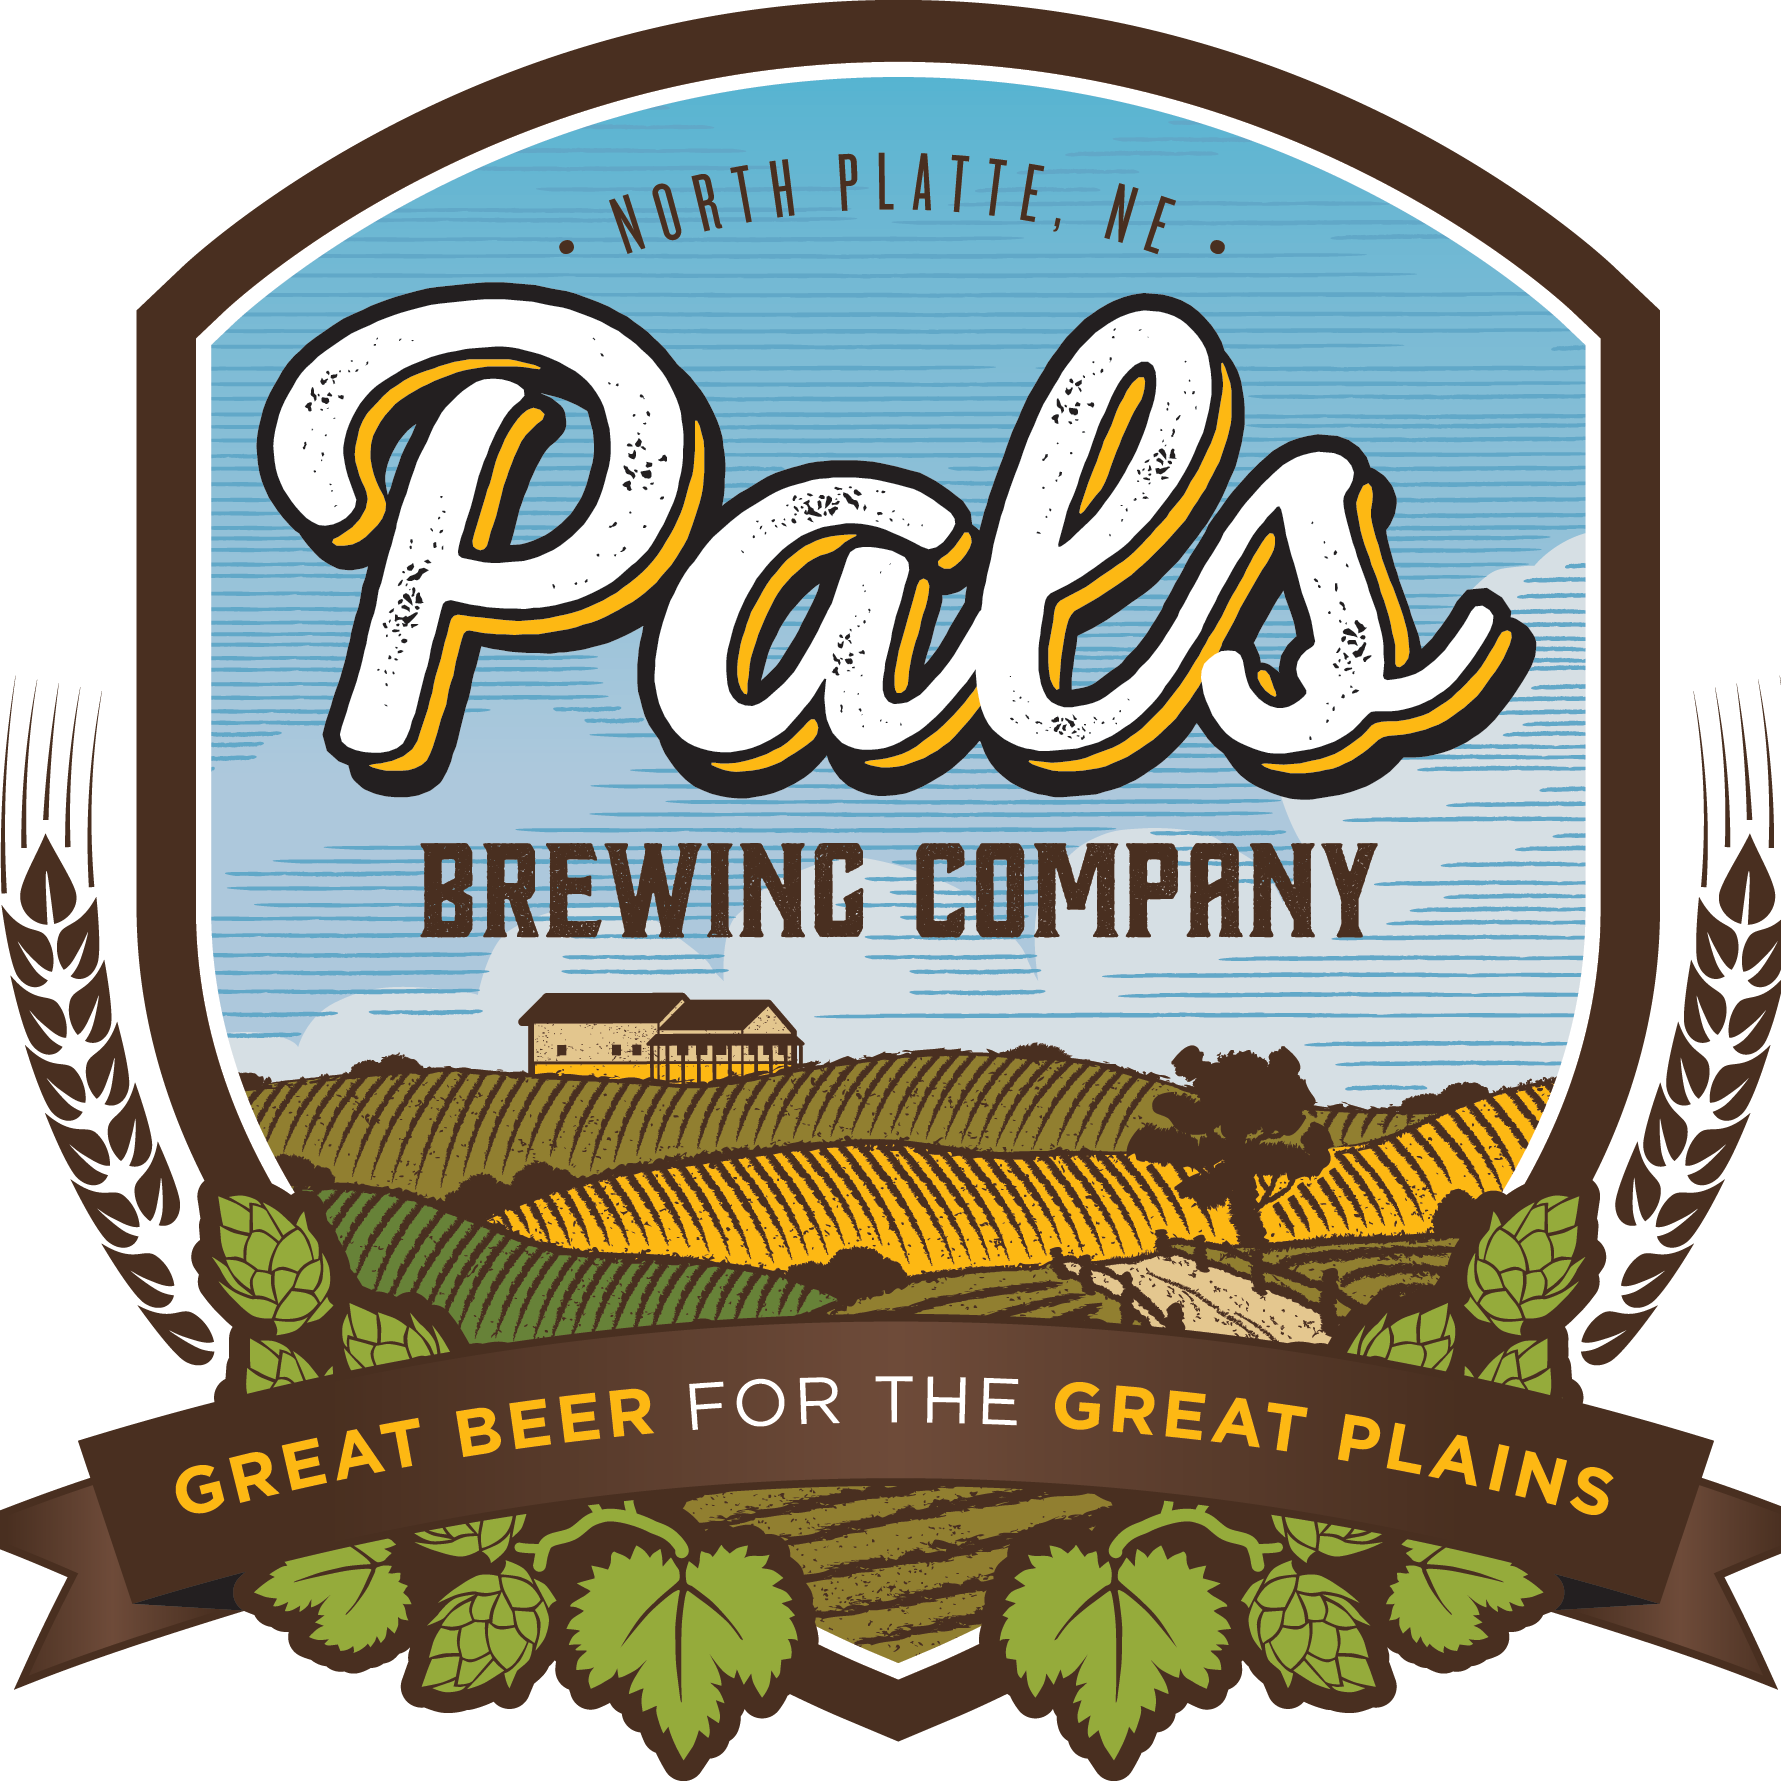 9:00 P.m. CST At Pals Brewing Company In North